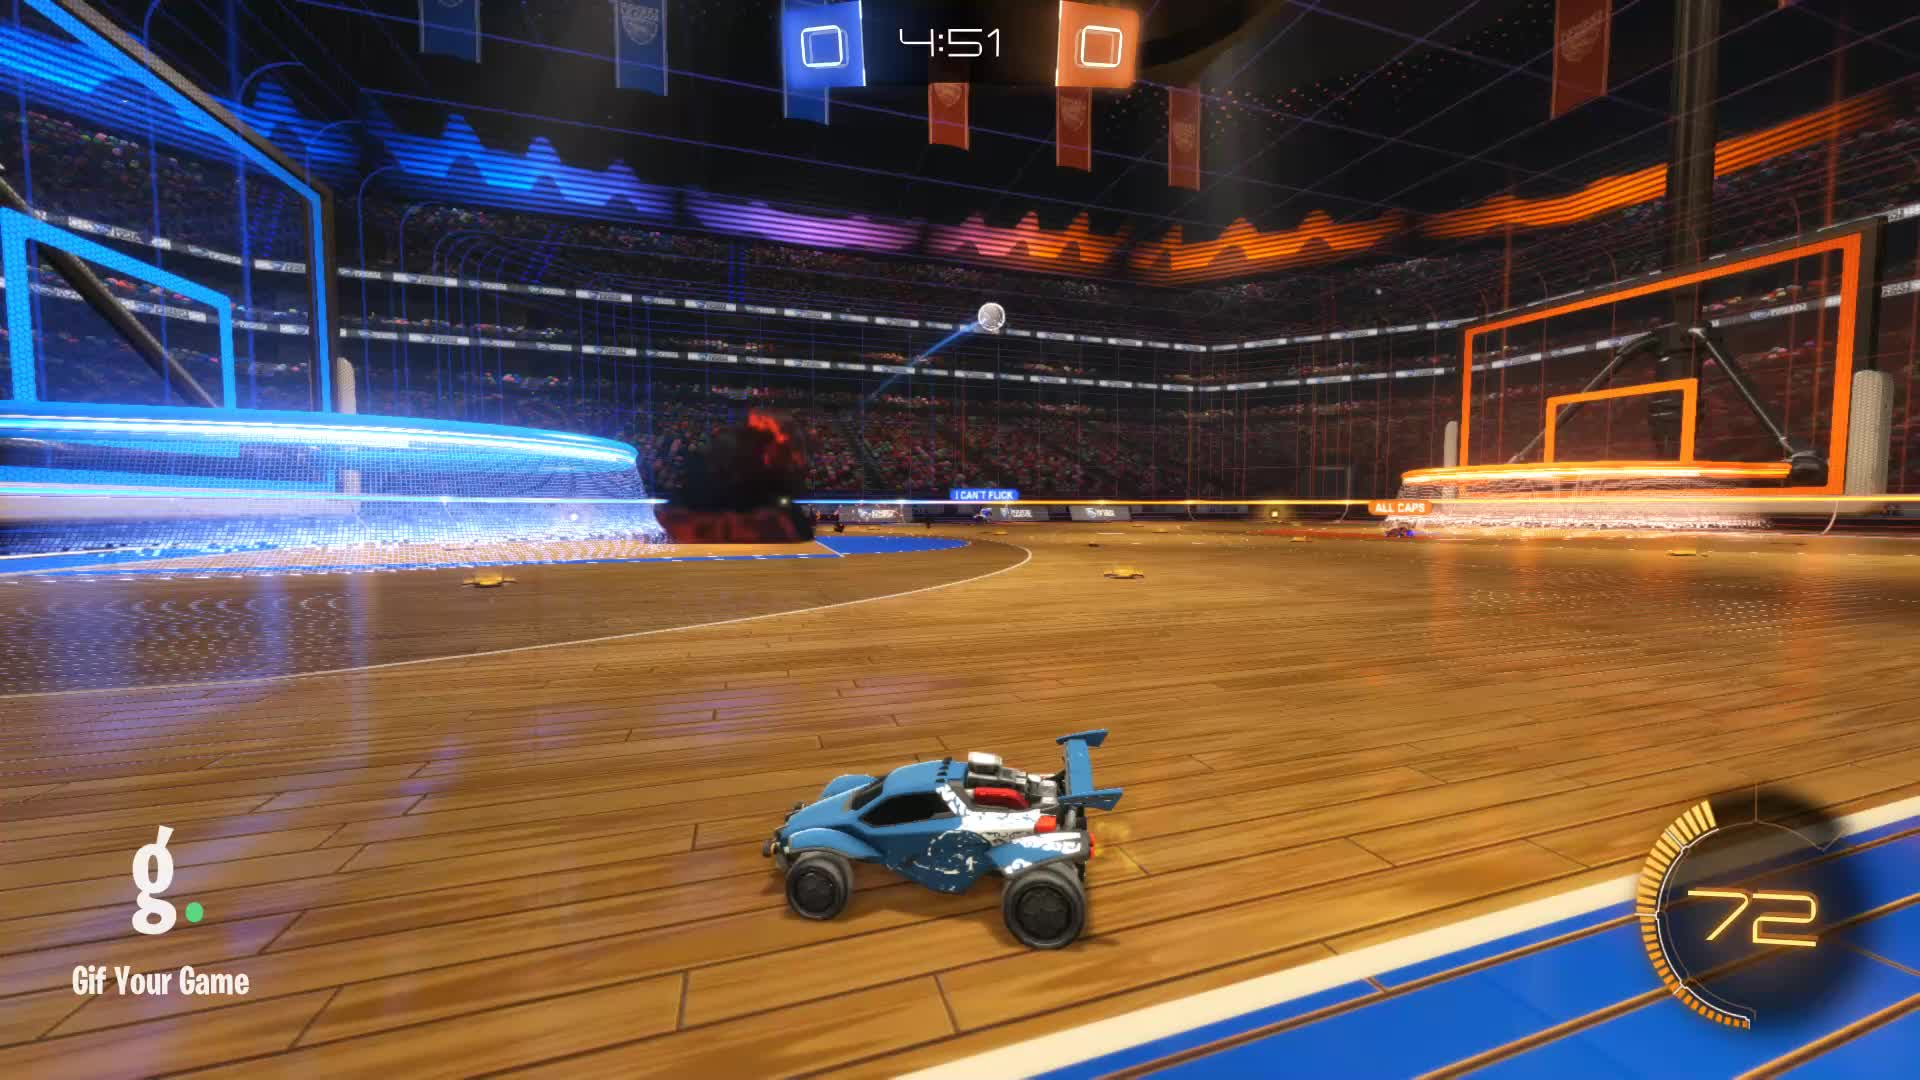 Gif Your Game, GifYourGame, Goal, Rocket League, RocketLeague, obl S> RL Inv, Goal 1: ALL CAPS GIFs